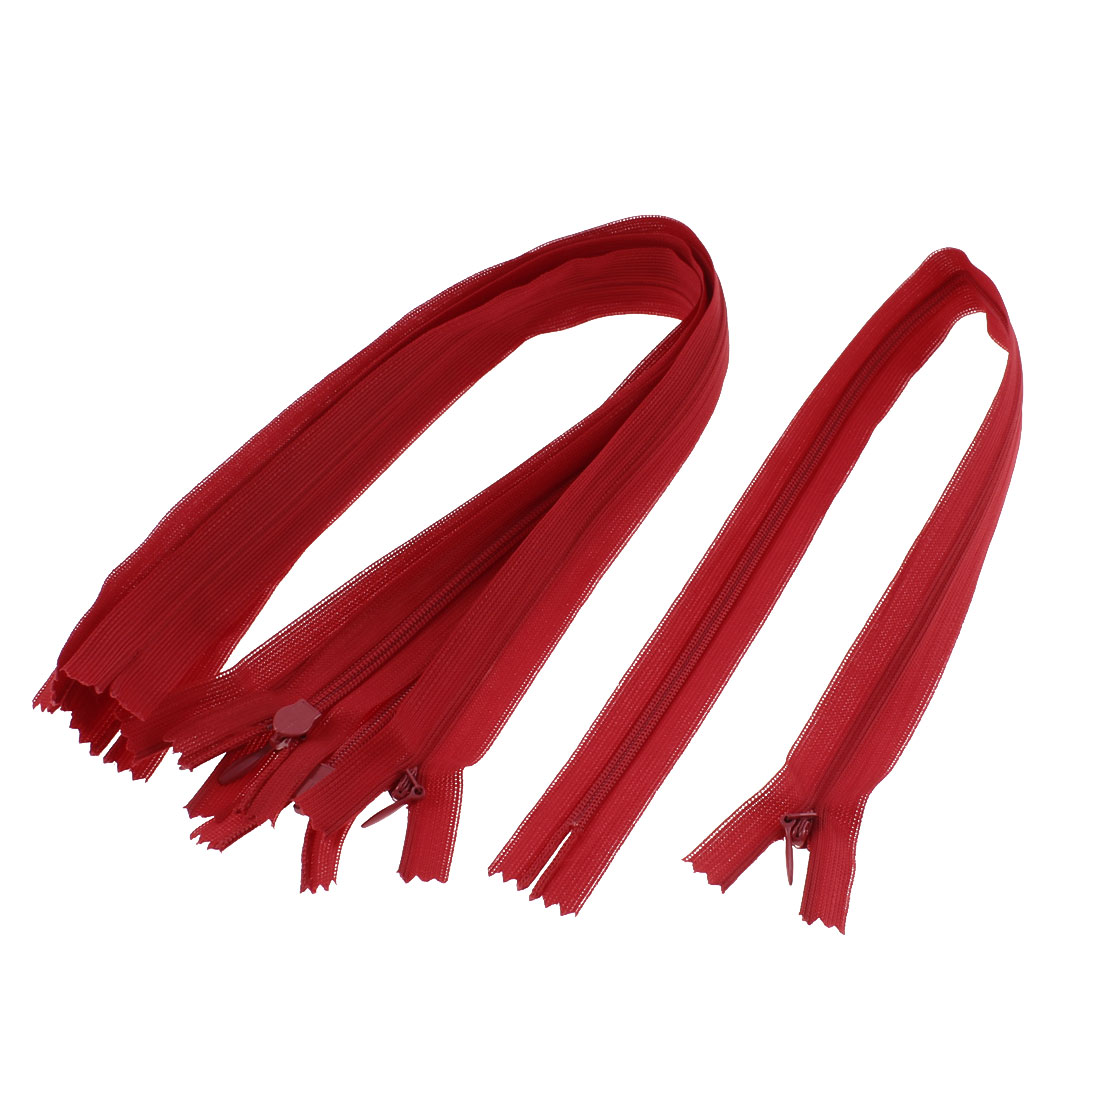 Dress Pants Closed End Nylon Zippers Tailor Sewing Craft Tool Red 40cm 5 Pcs